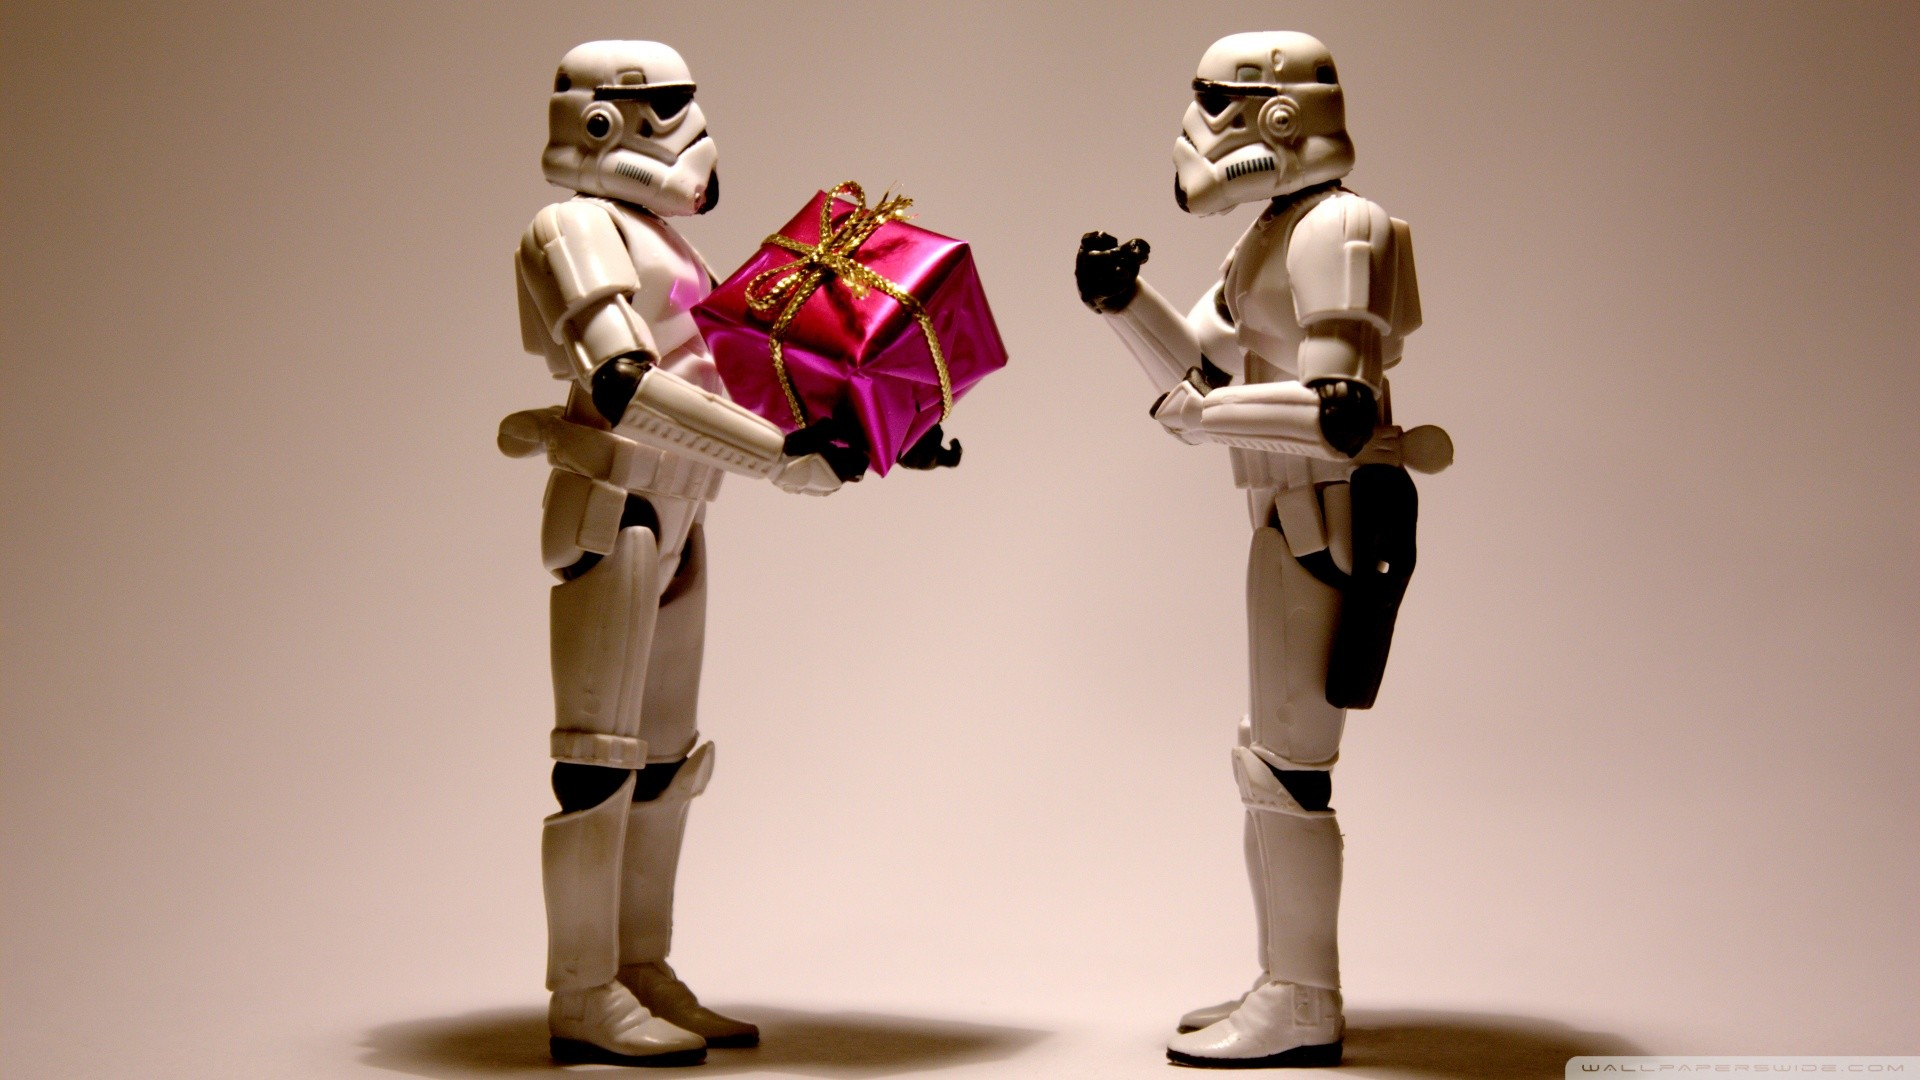 Star Wars Stormtroopers Funny Present Christmas Gifts Order 66